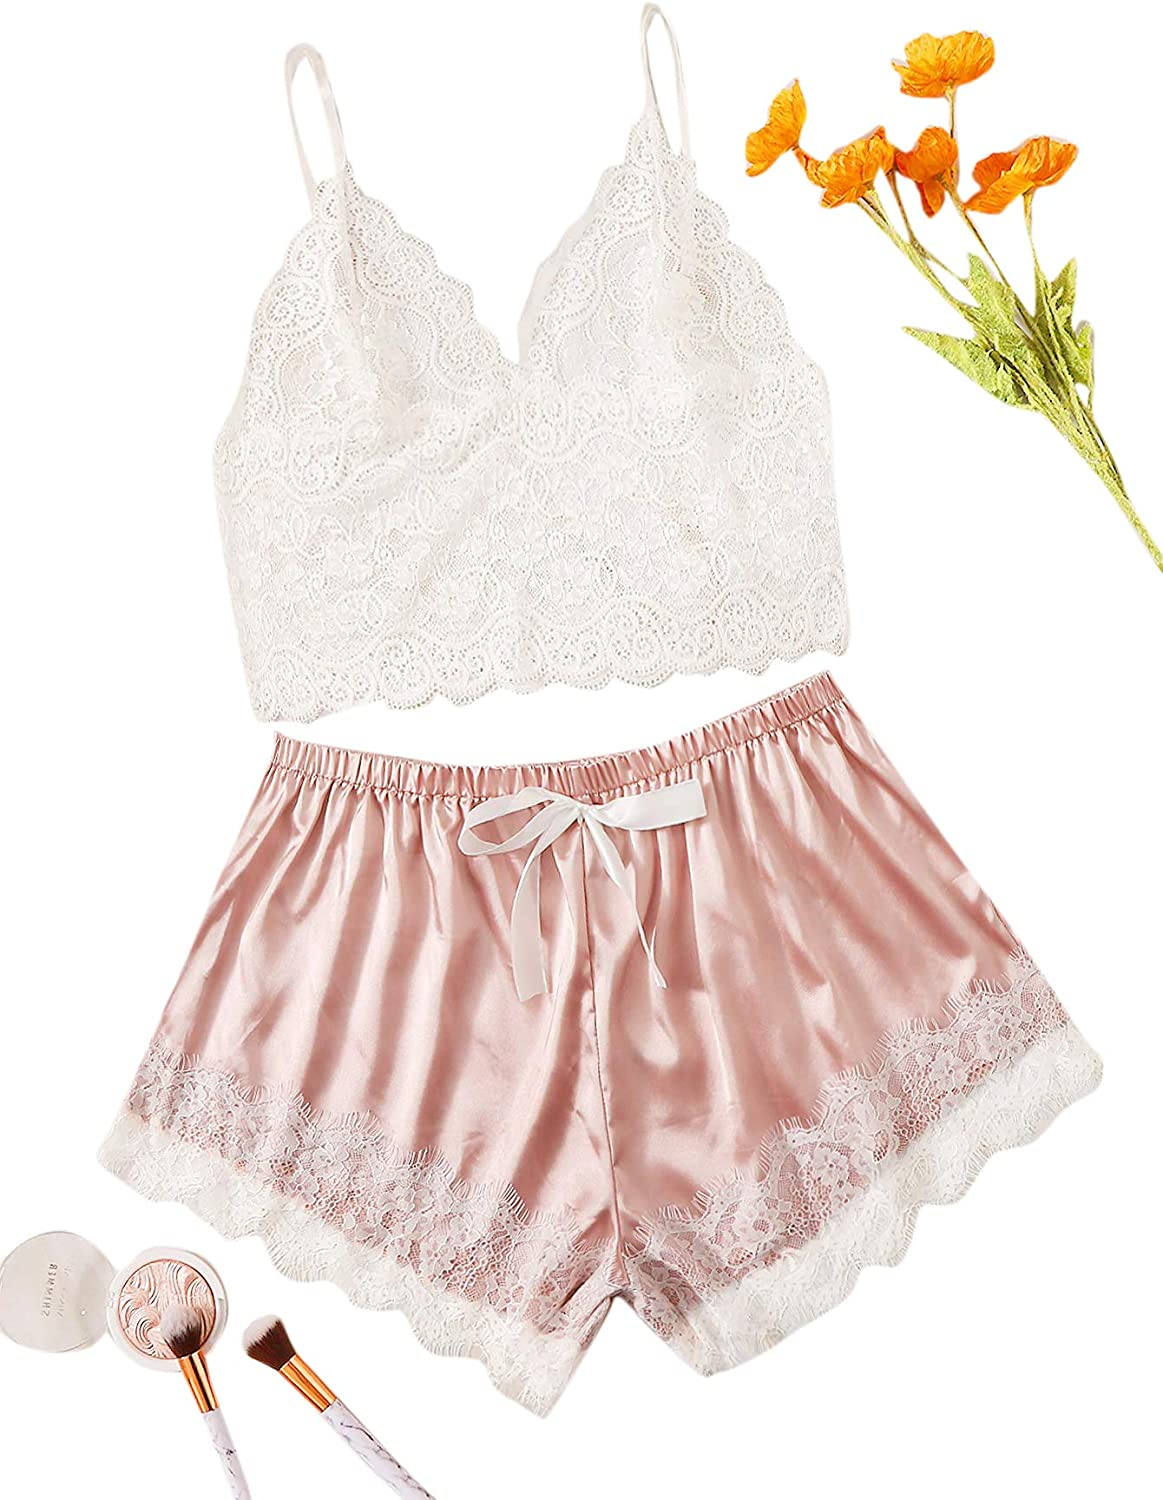 Milumia Women's Plus Size Lingerie Set Lace Sheer Cami Top with Shorts Sleepwear